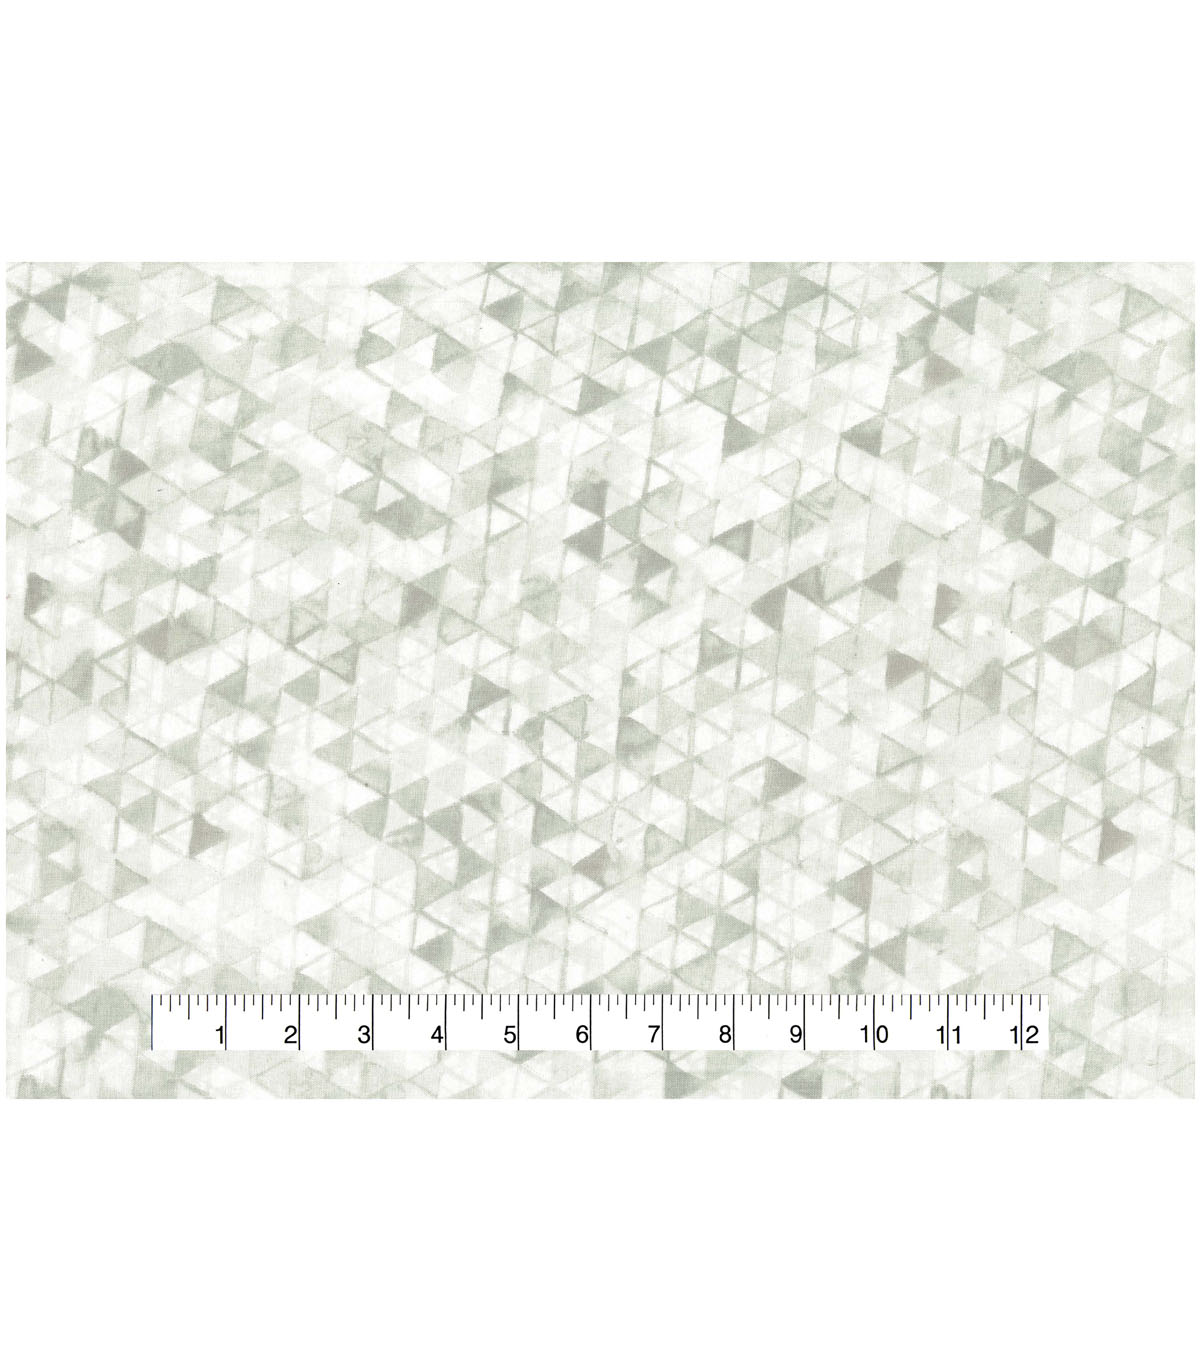 Premium Wide Cotton Fabric-White Watercolor Triangles